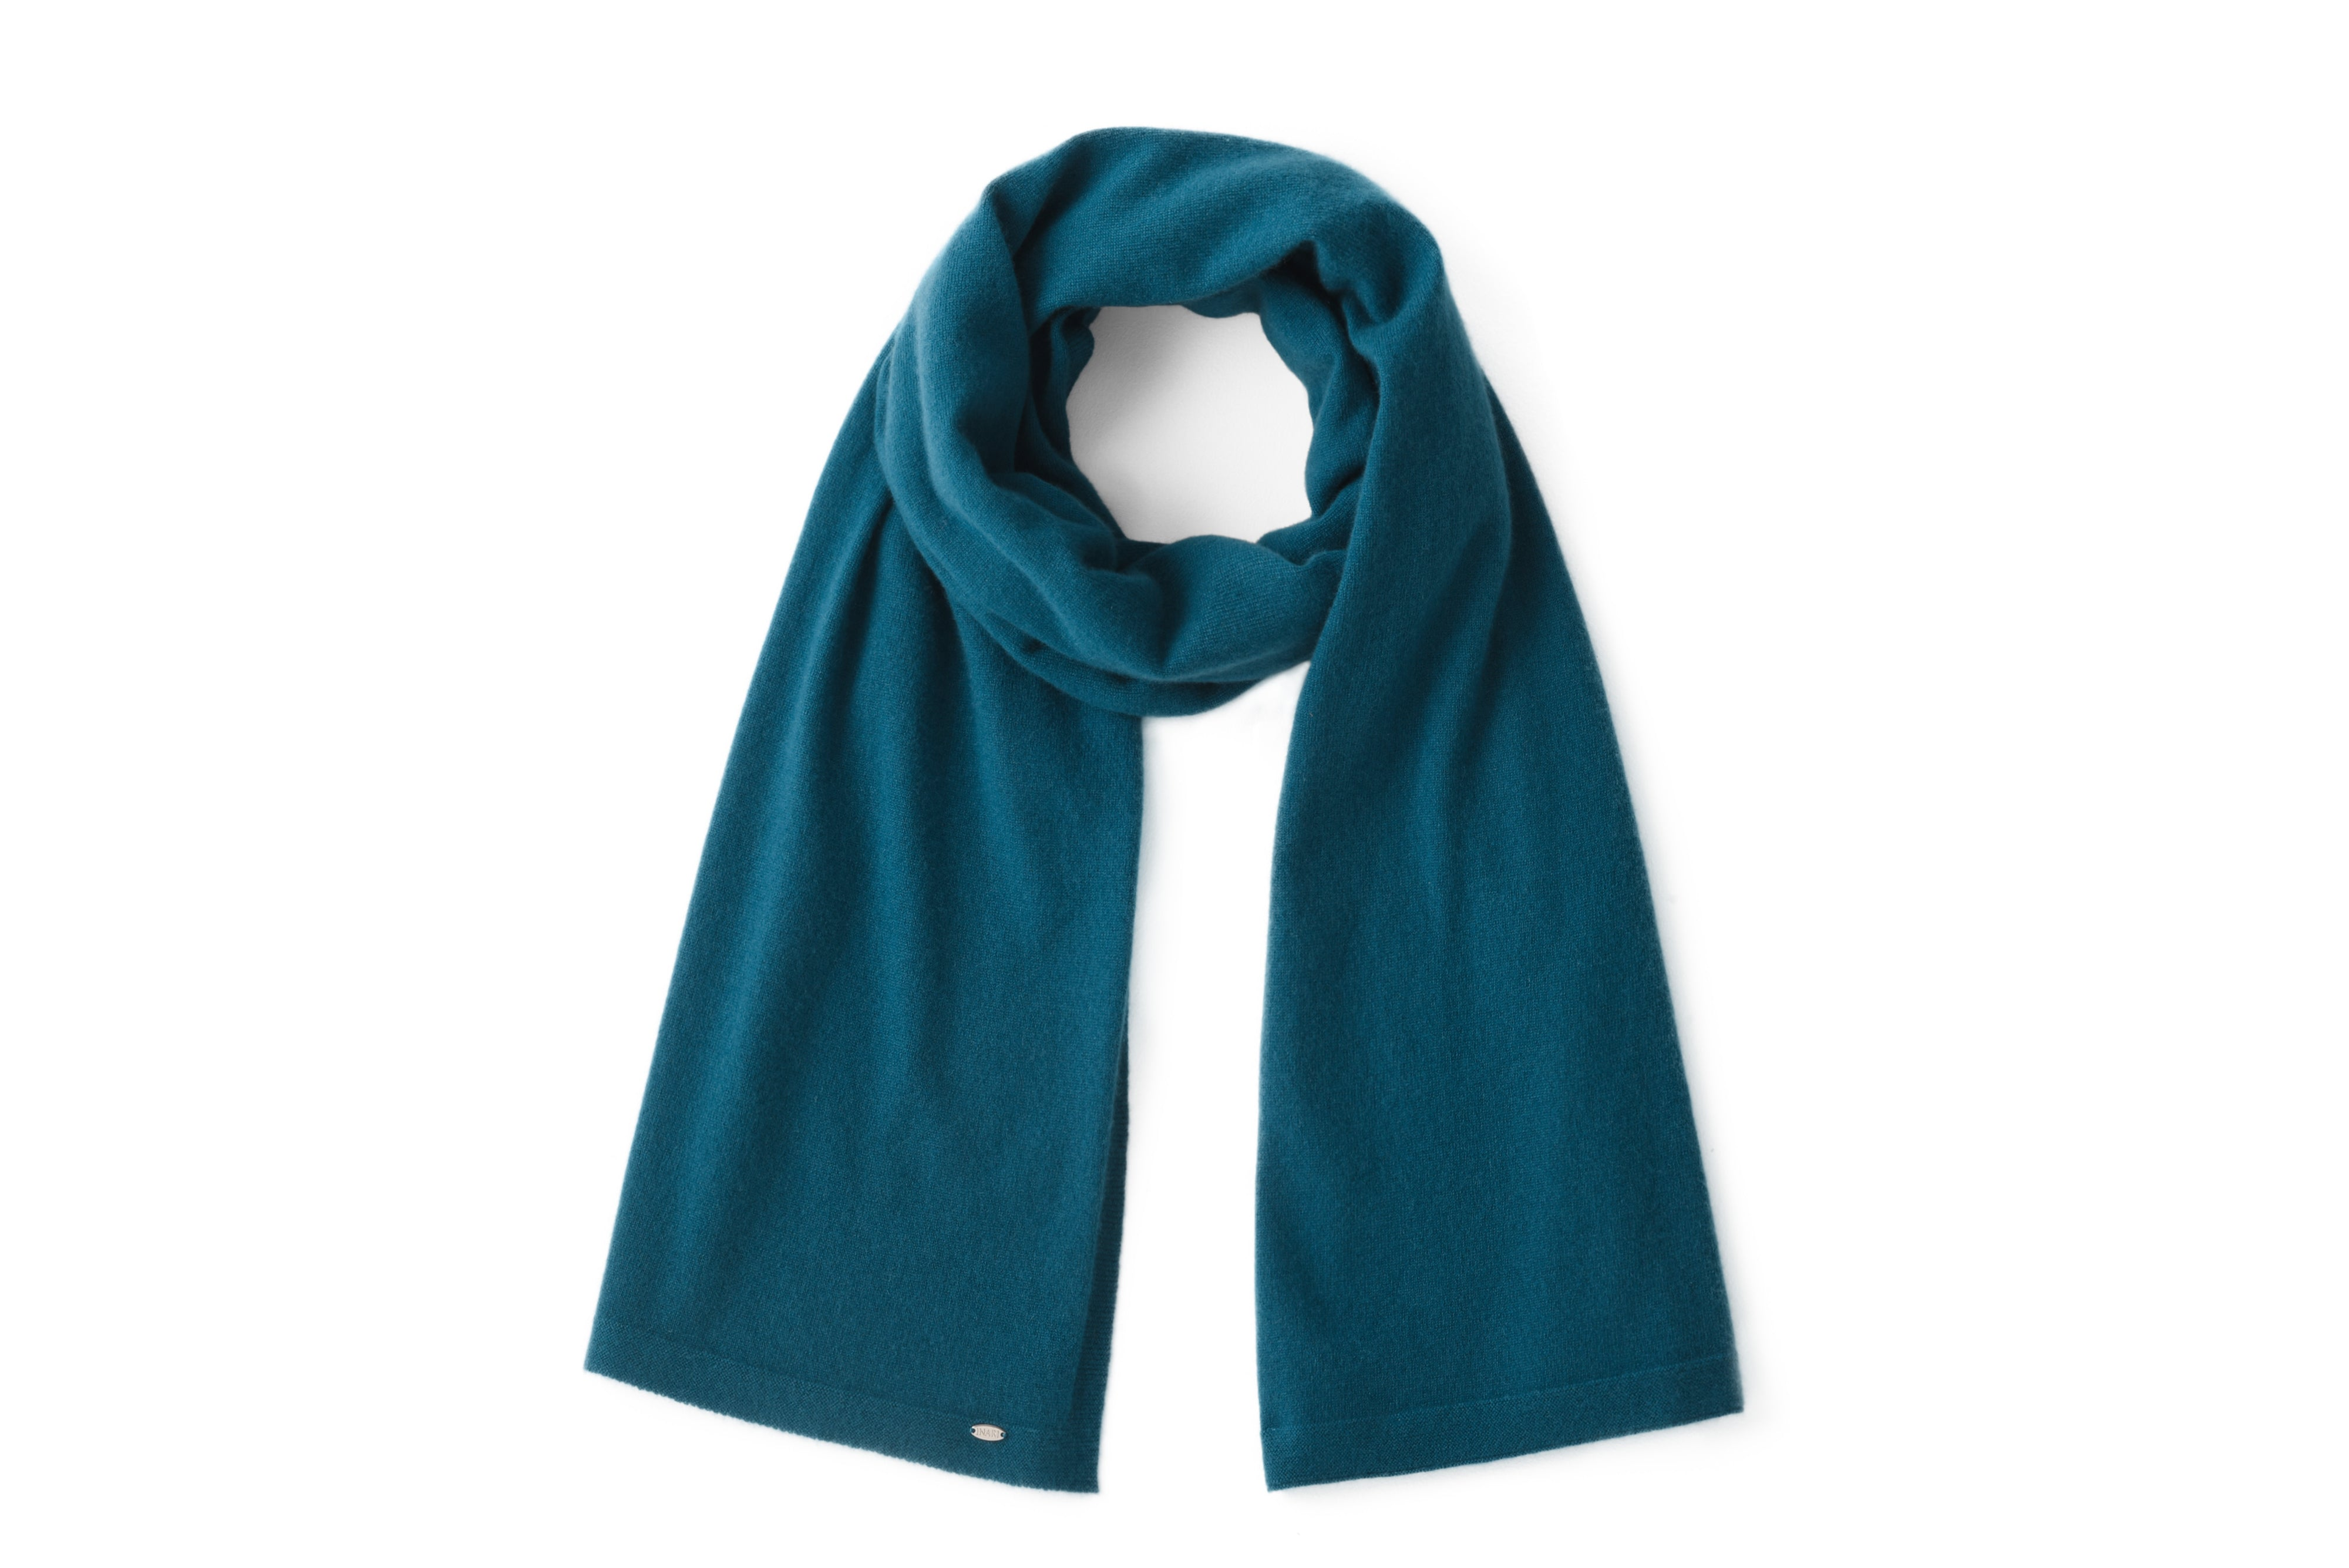 Inari Women's petrol cashmere scarf / shawl - 100% high-quality cashmere